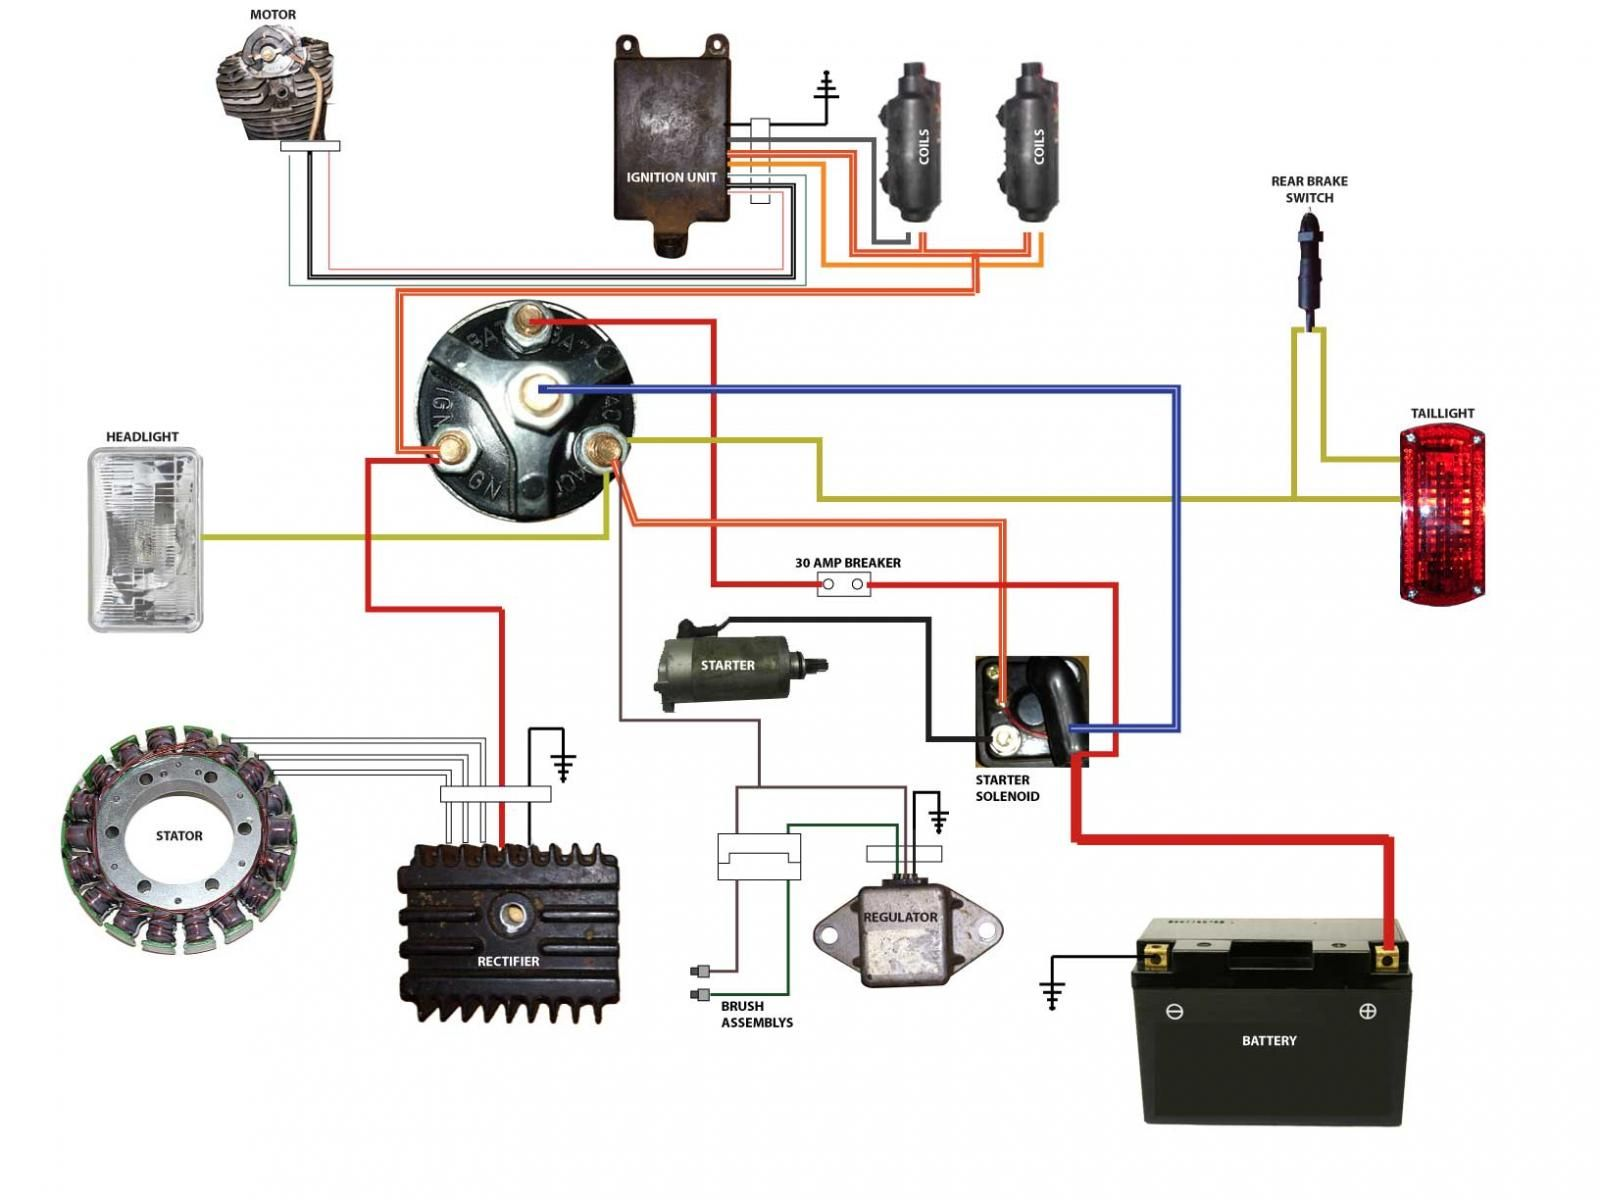 Simplified Wiring Diagram For Xs400 Cafe Motorcycle Wiring Bobber Motorcycle Bobber